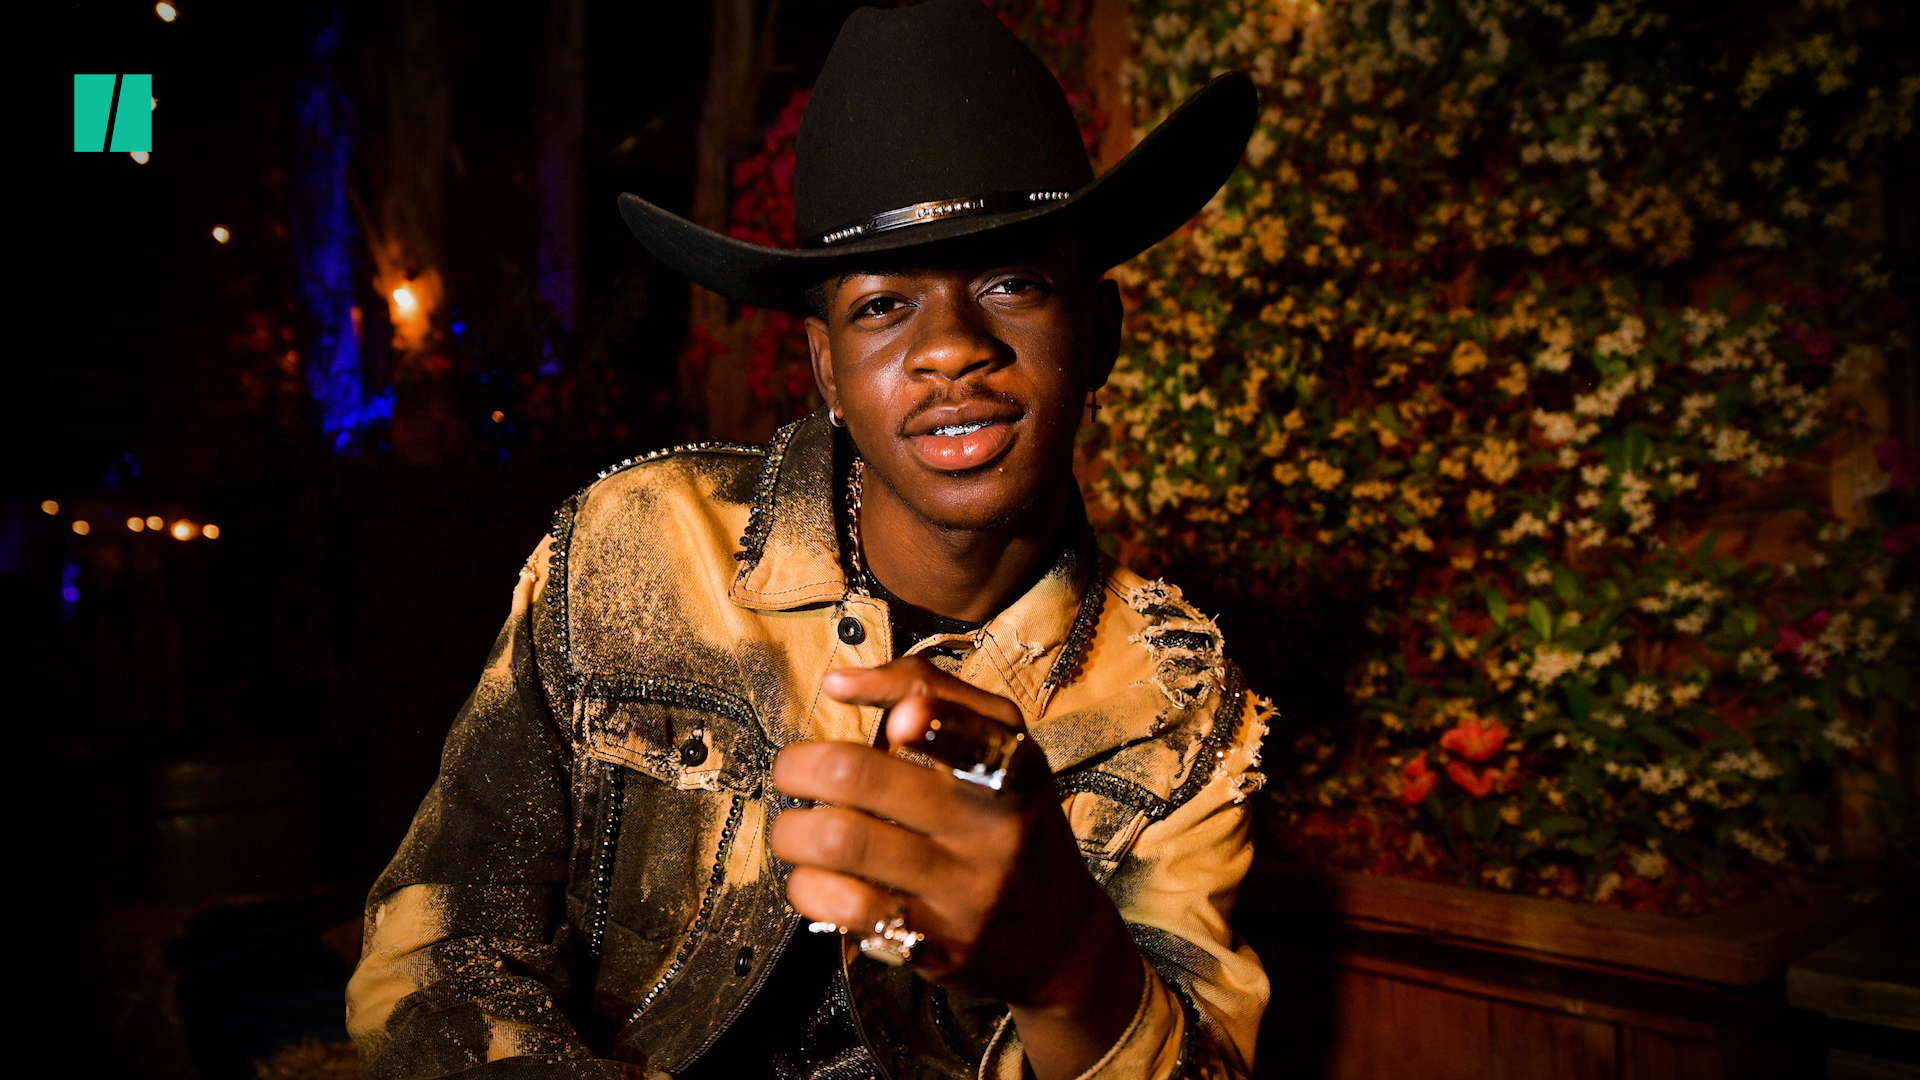 Mariah Carey Sends Lil Nas X Love After 'Old Town Road' Broke Her Song's Record